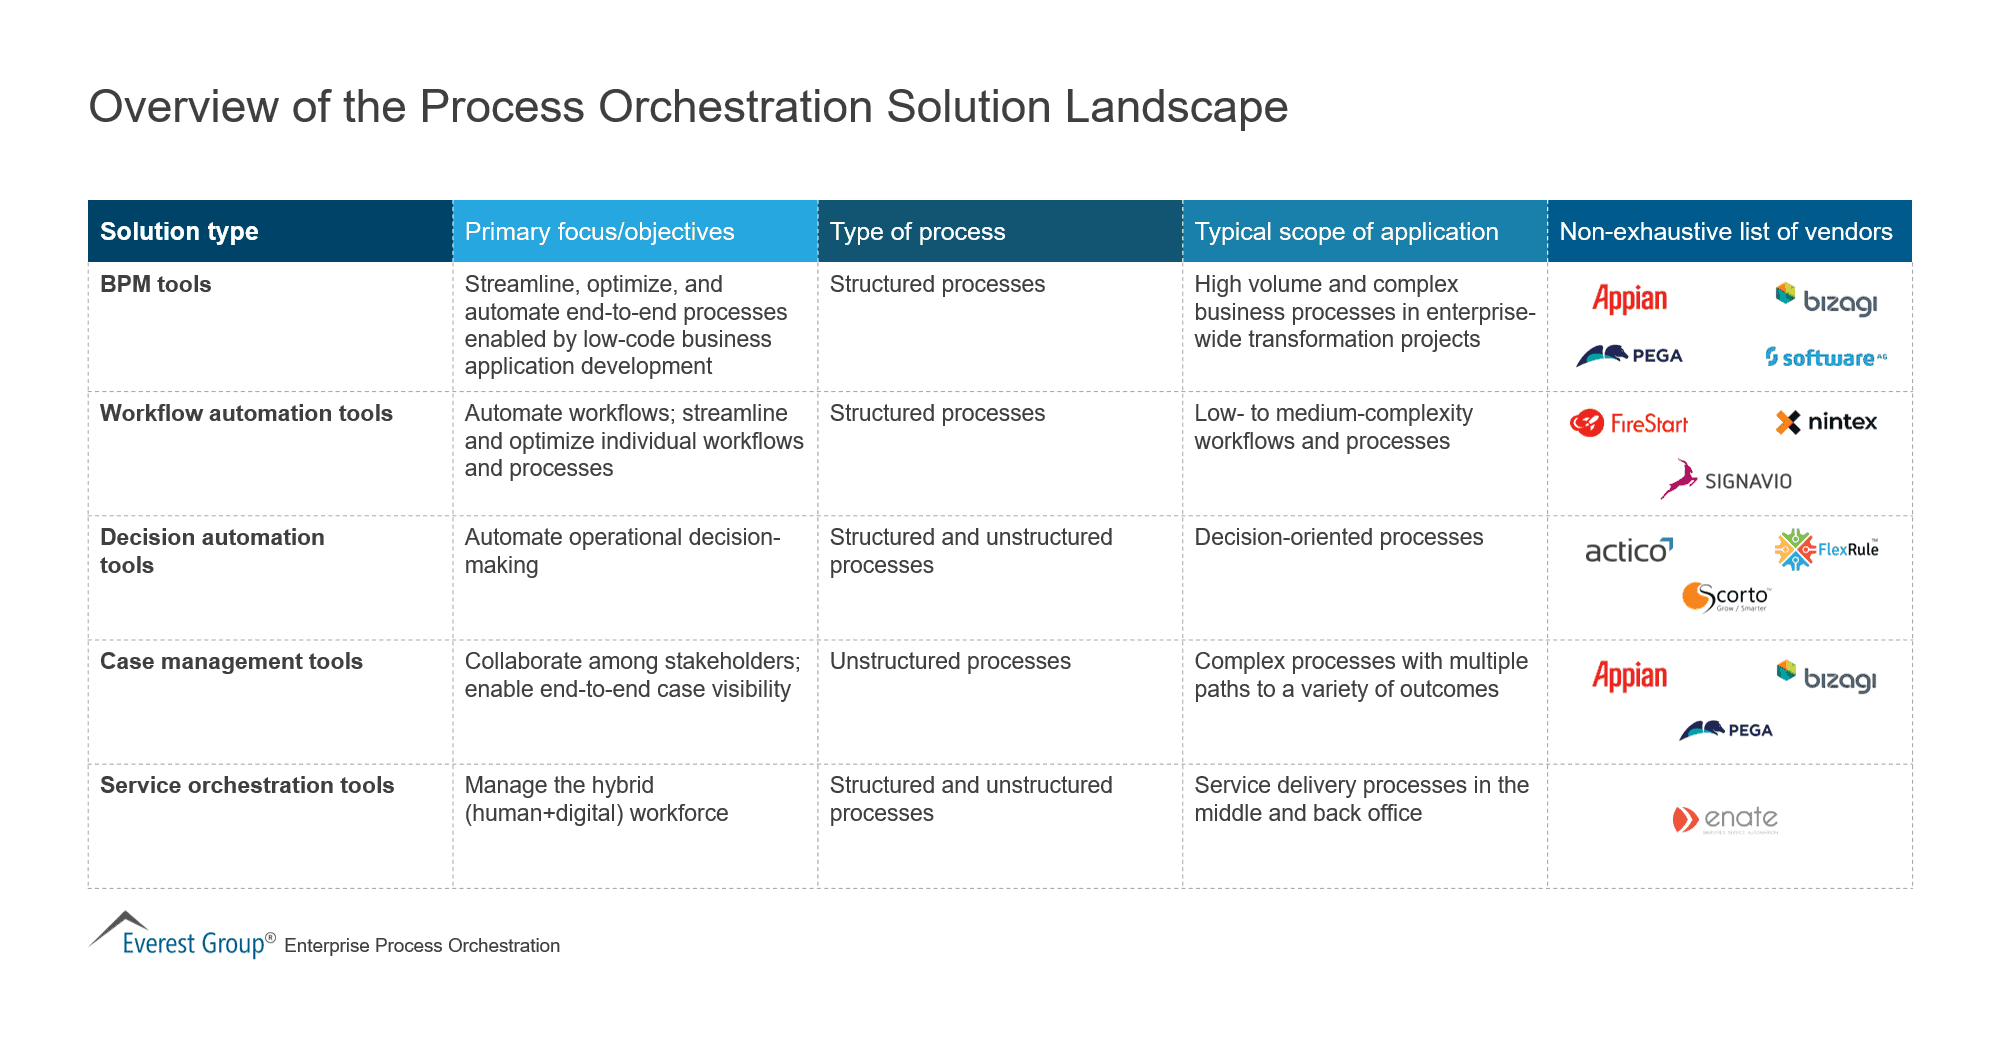 Overview of the Process Orchestration Solution Landscape